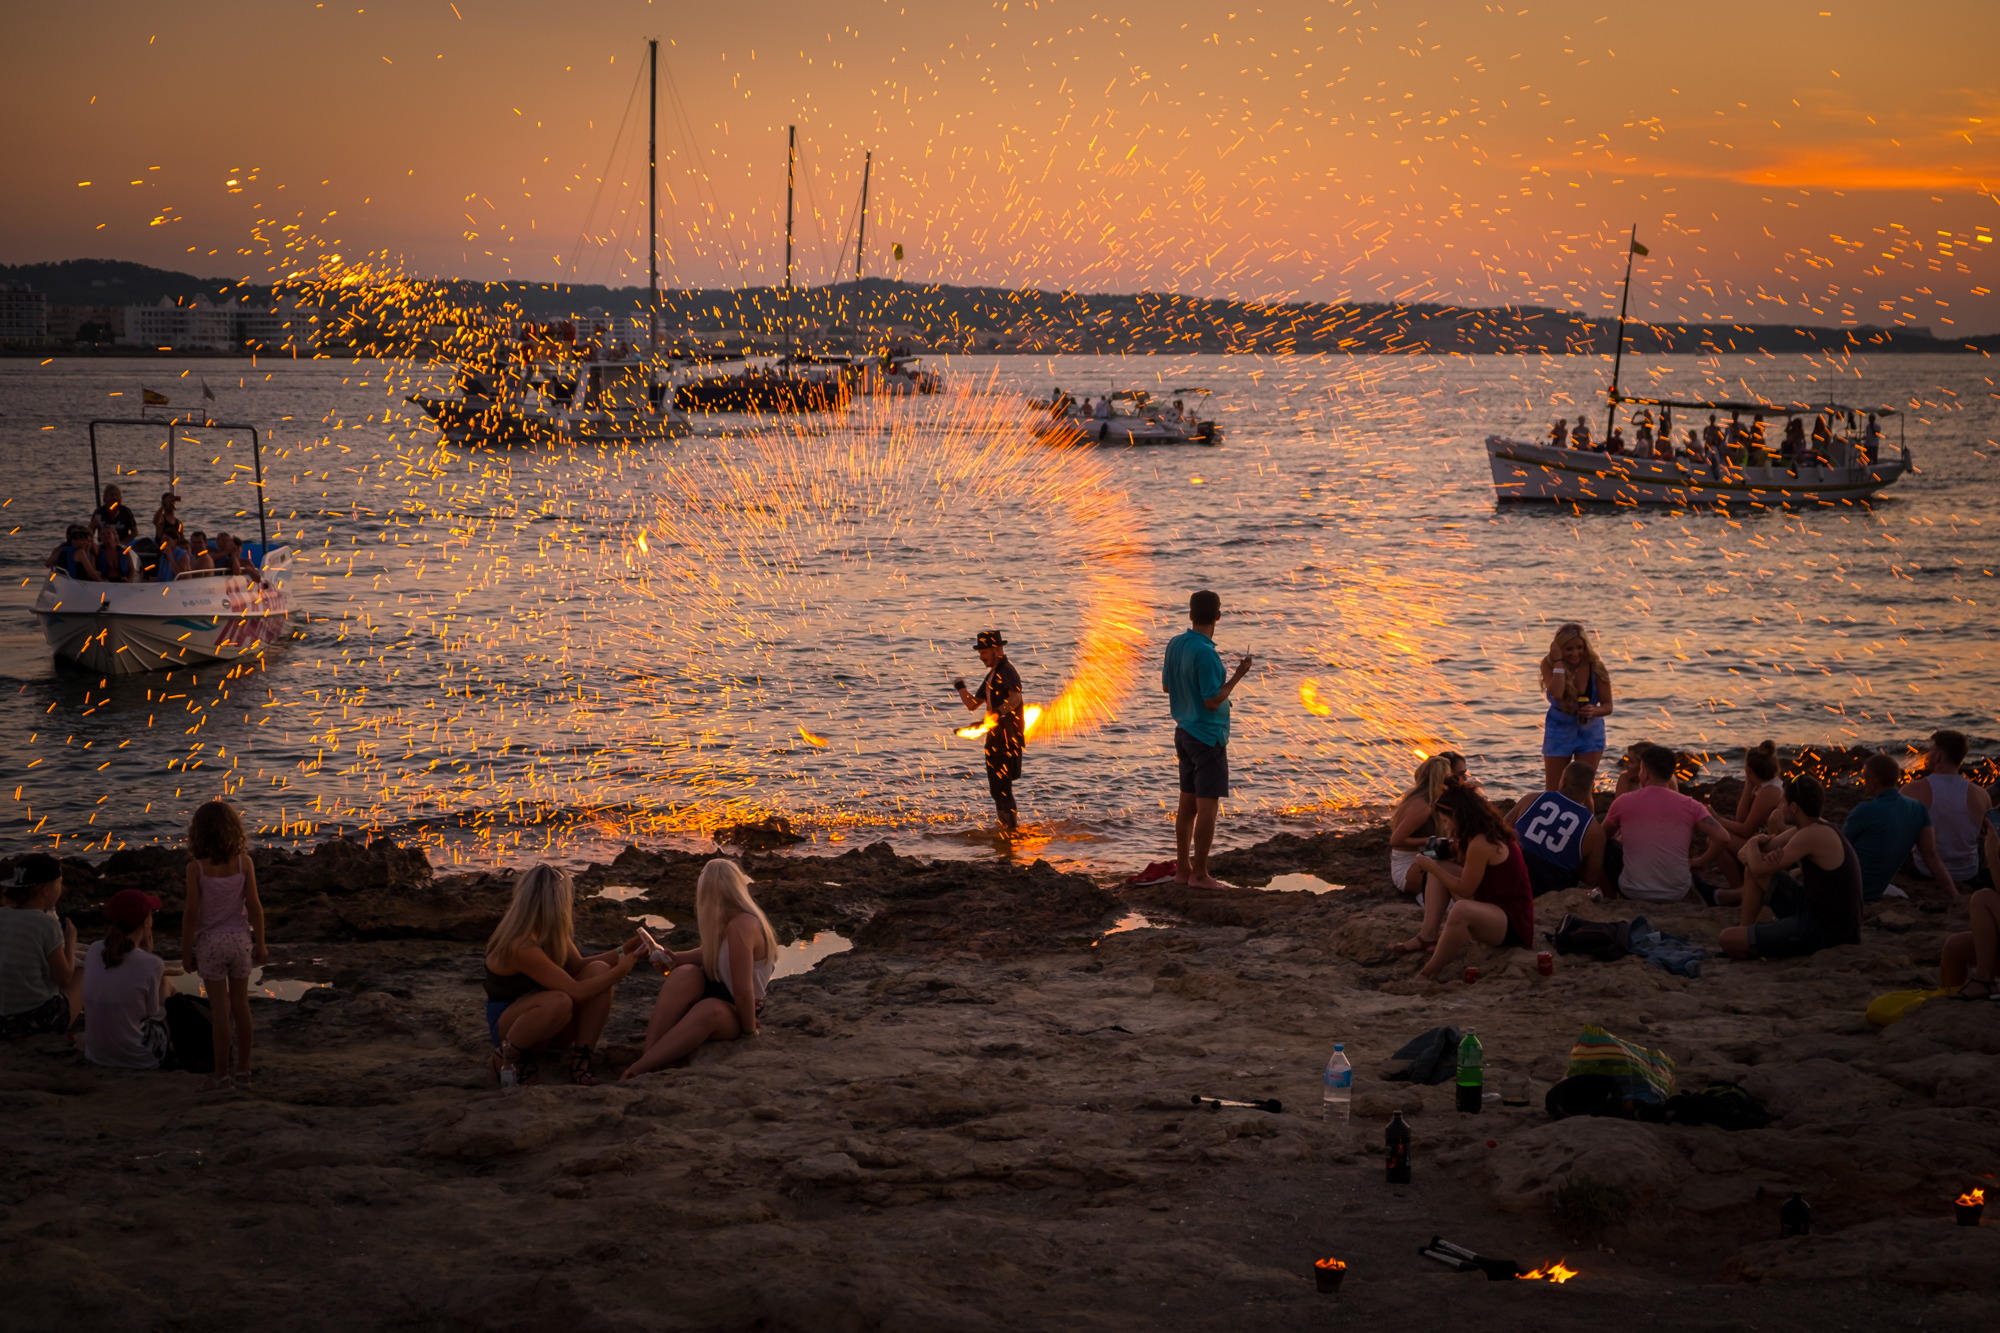 Photo of a Fire spinner in Ibiza at sunset taken by Trevor Sherwin